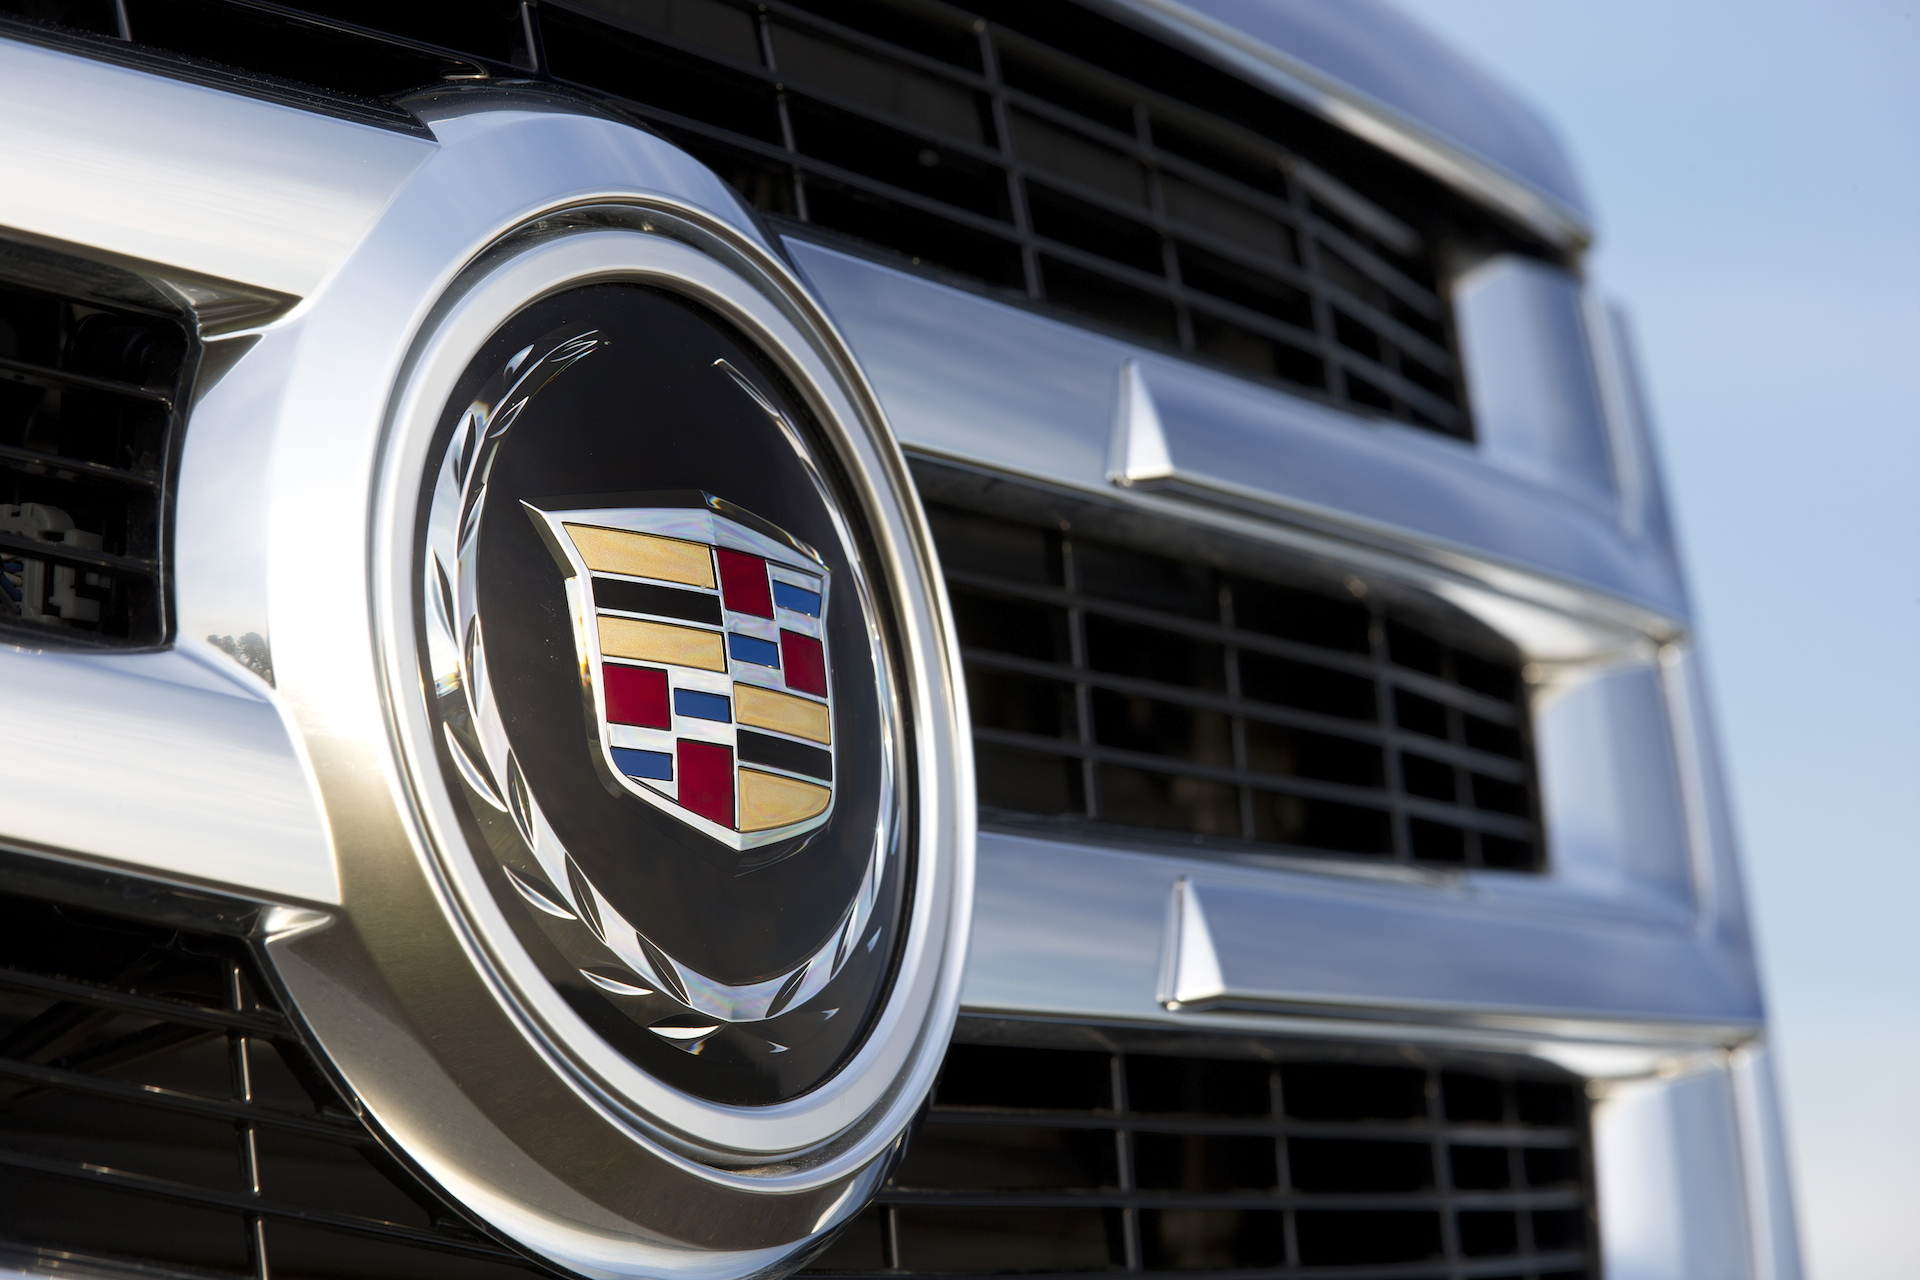 us photos detail media cadillac pressroom galleries pages srx vehicles en content united states